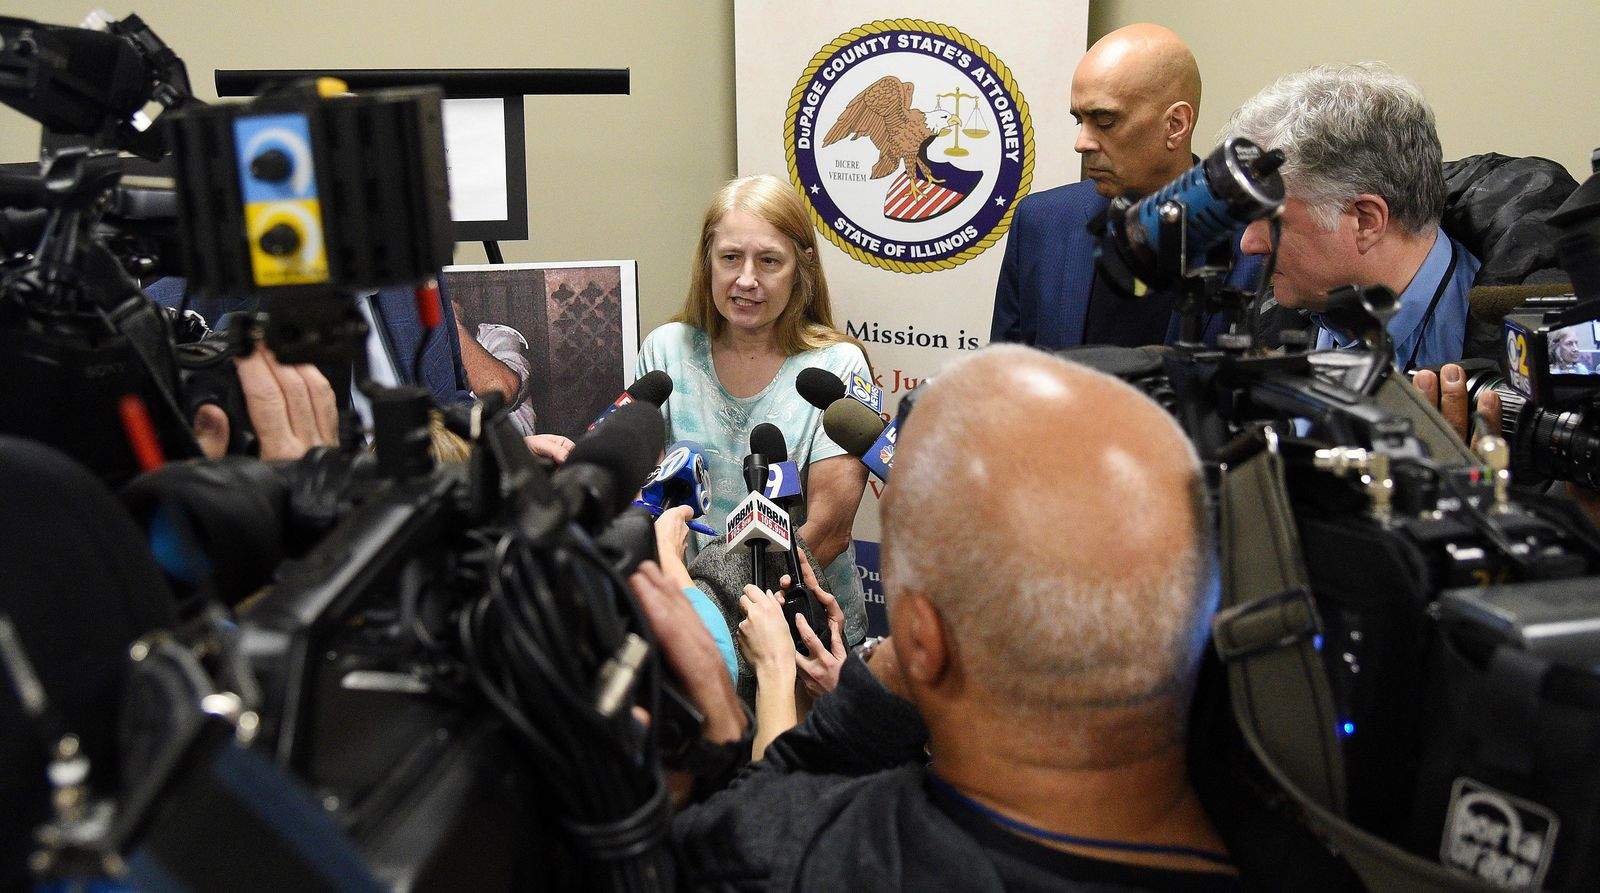 Cindy Evans, a friend of murder victim Pamela Maurer, speaks to the media following a news conference in Wheaton, Ill., Monday, Jan. 13, 2020. A suspected serial killer strangled Maurer, a suburban Chicago teenage girl, in 1976 and likely killed another woman just days before she was to testify in court that he raped her, police said Monday. (Rick West/Daily Herald via AP)